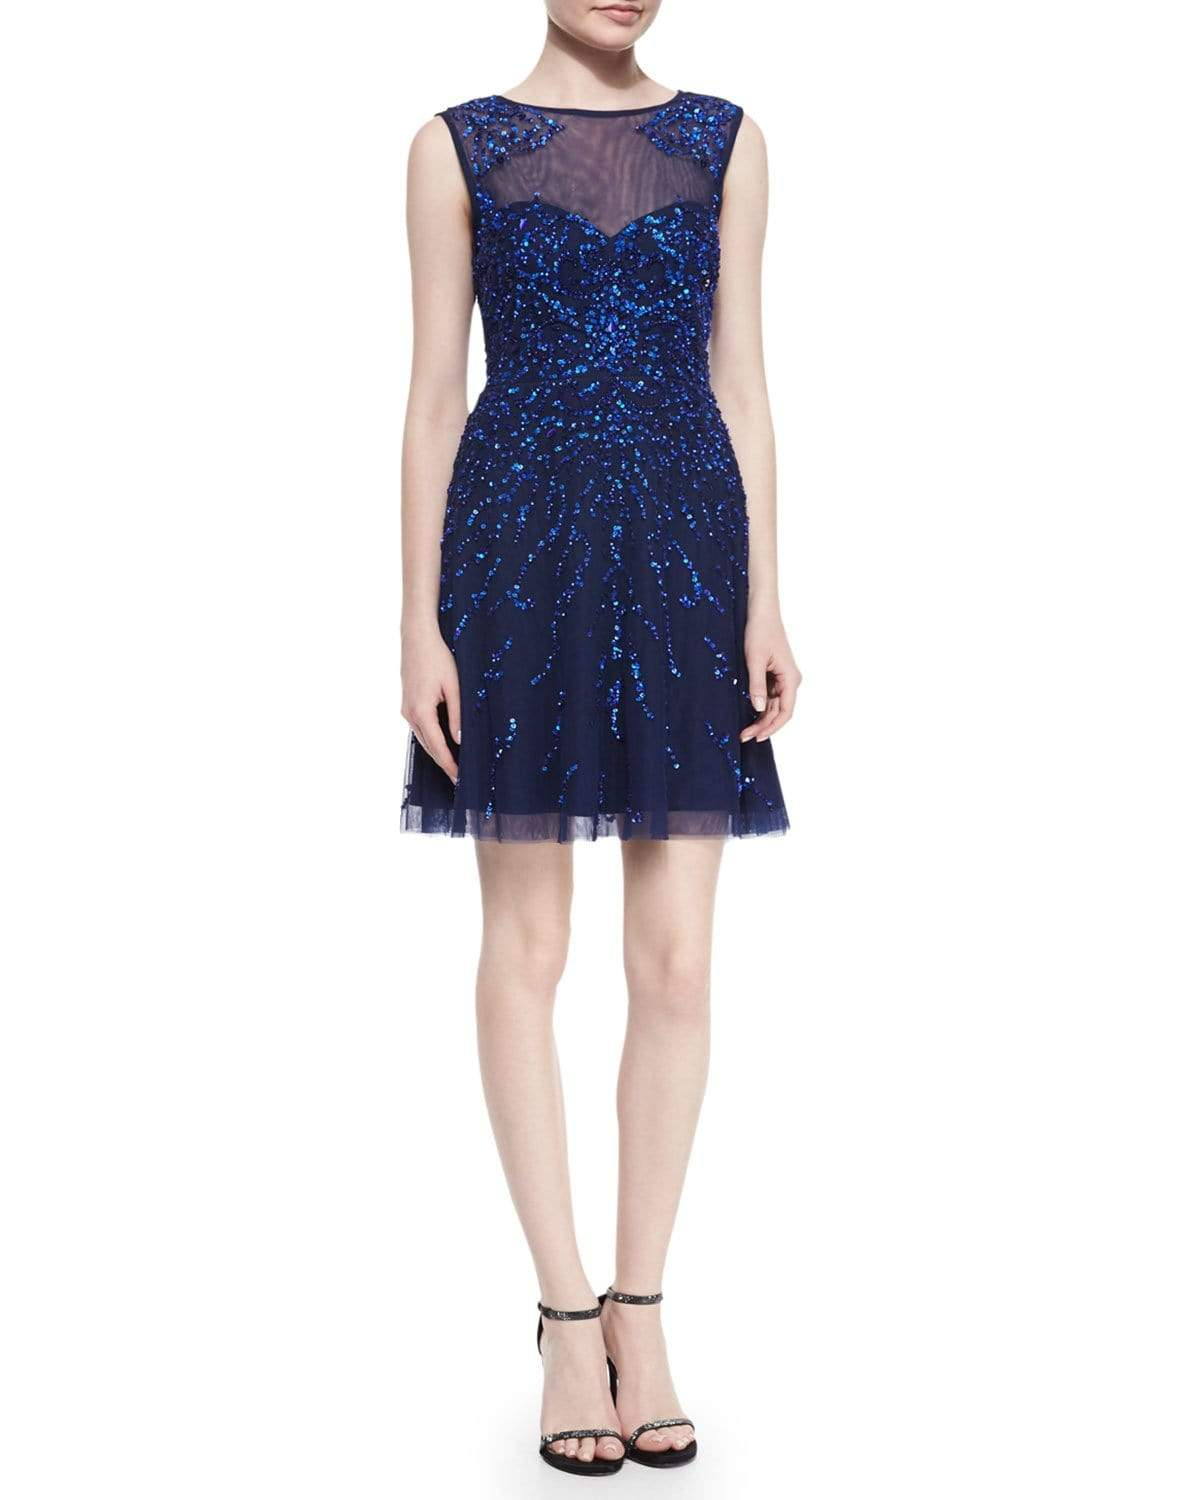 Adrianna Papell - 54465630 Illusion Jewel Sequined Mesh Cocktail Dress from Adrianna Papell